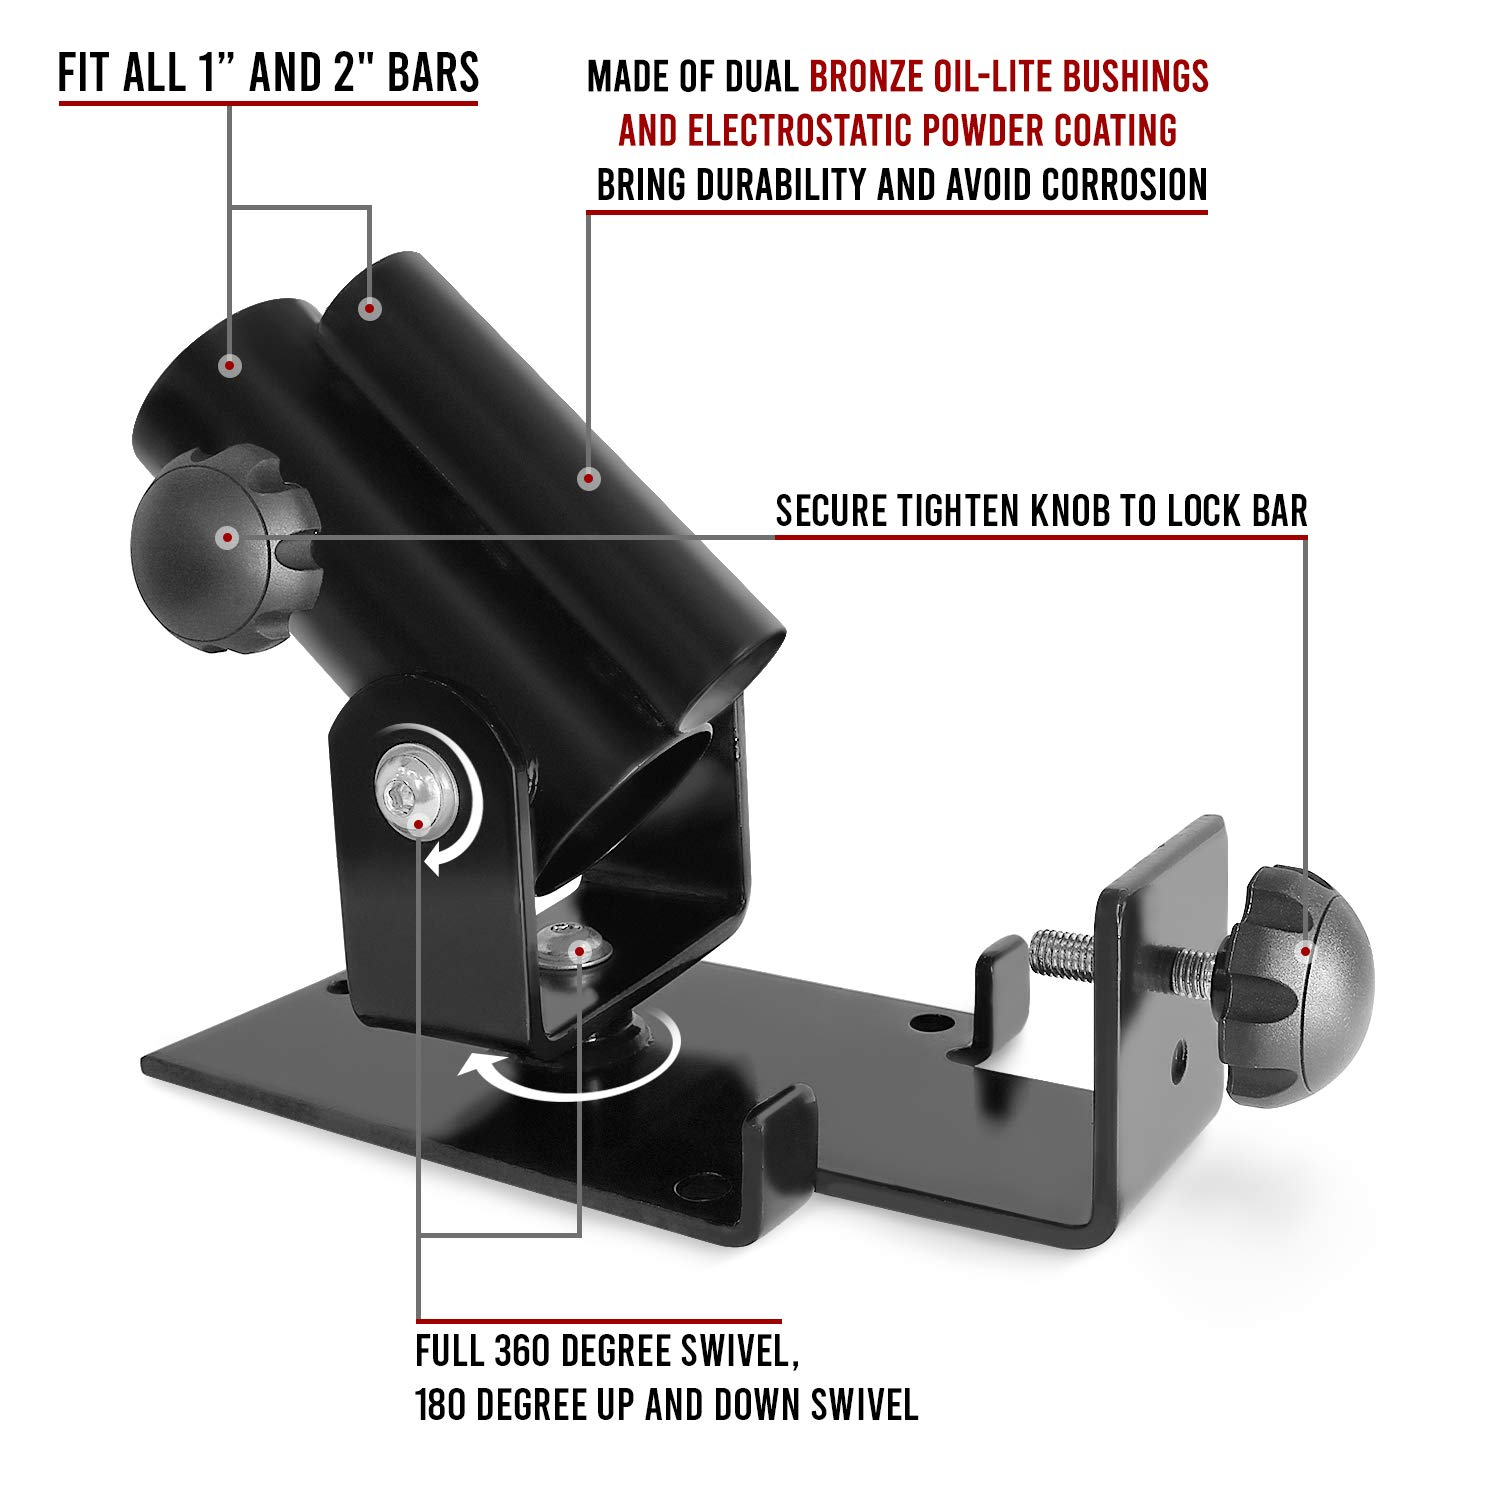 Fits 1-inch Standard /& 2-inch Olympic Bars Full 360/° Swivel for Easy Use in Small Spaces A2ZCARE Deluxe T-Bar Row Platform